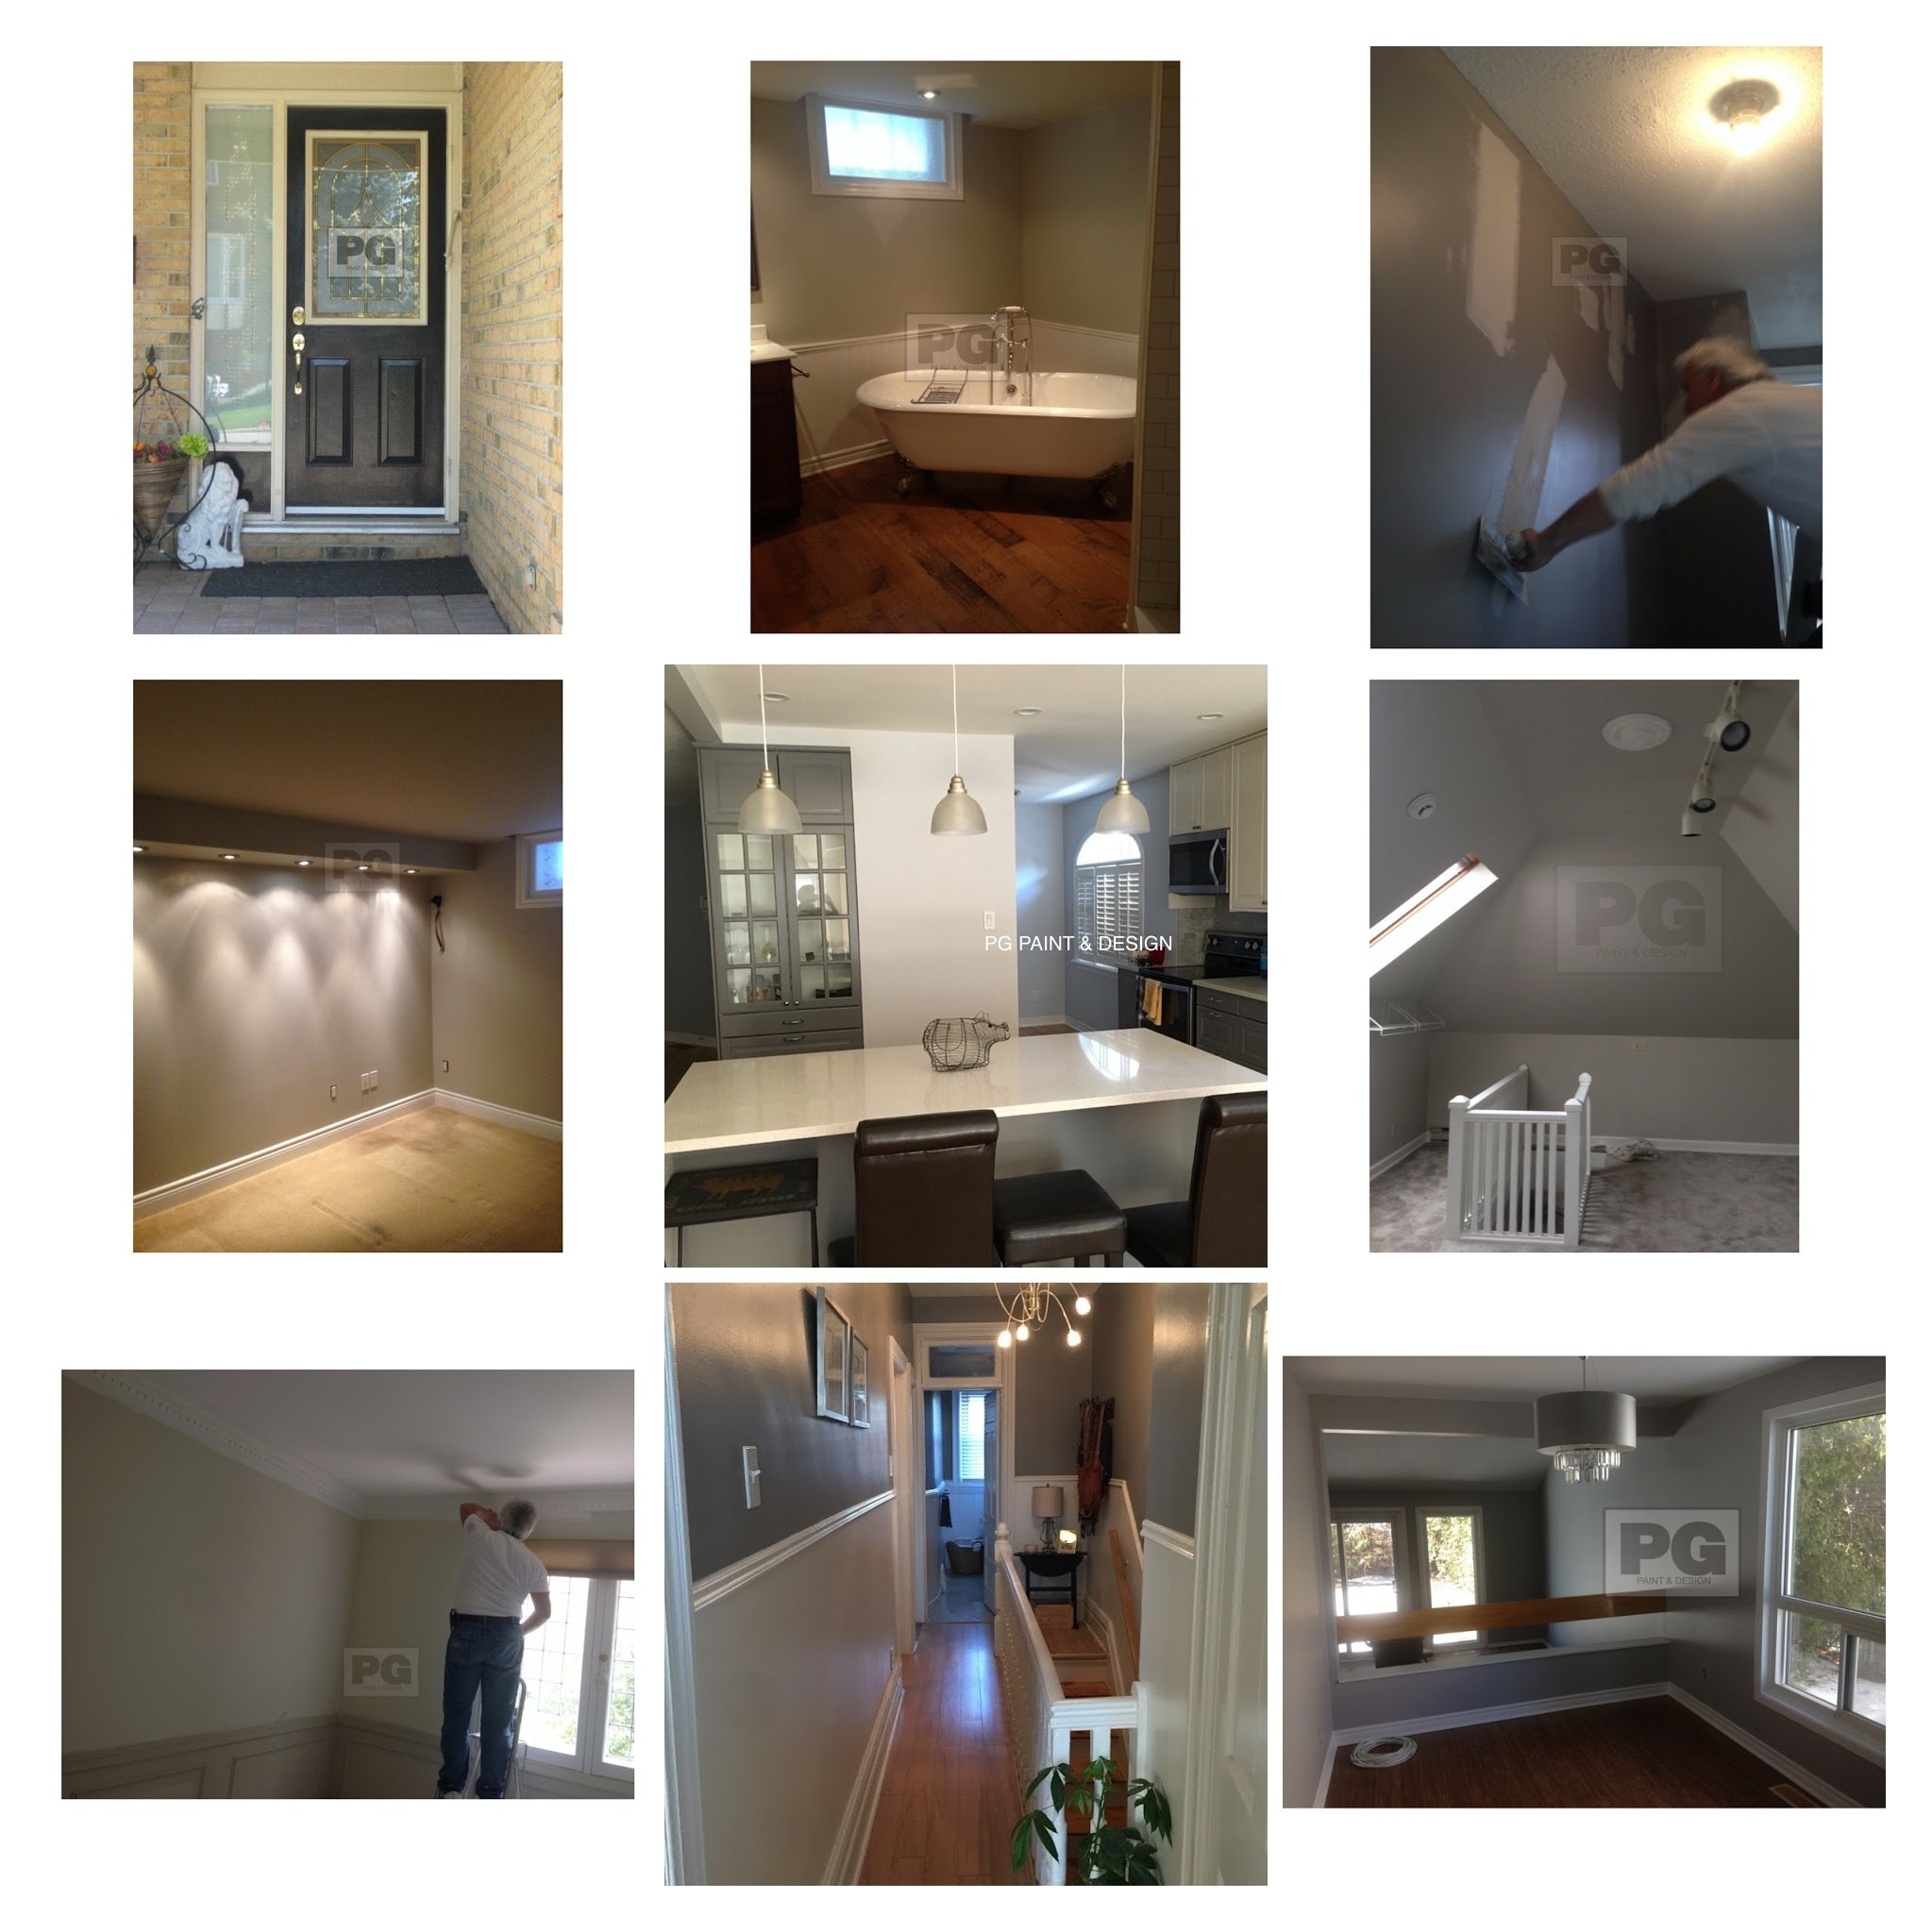 painters in Ottawa PG PAINT & DESIGN painting company